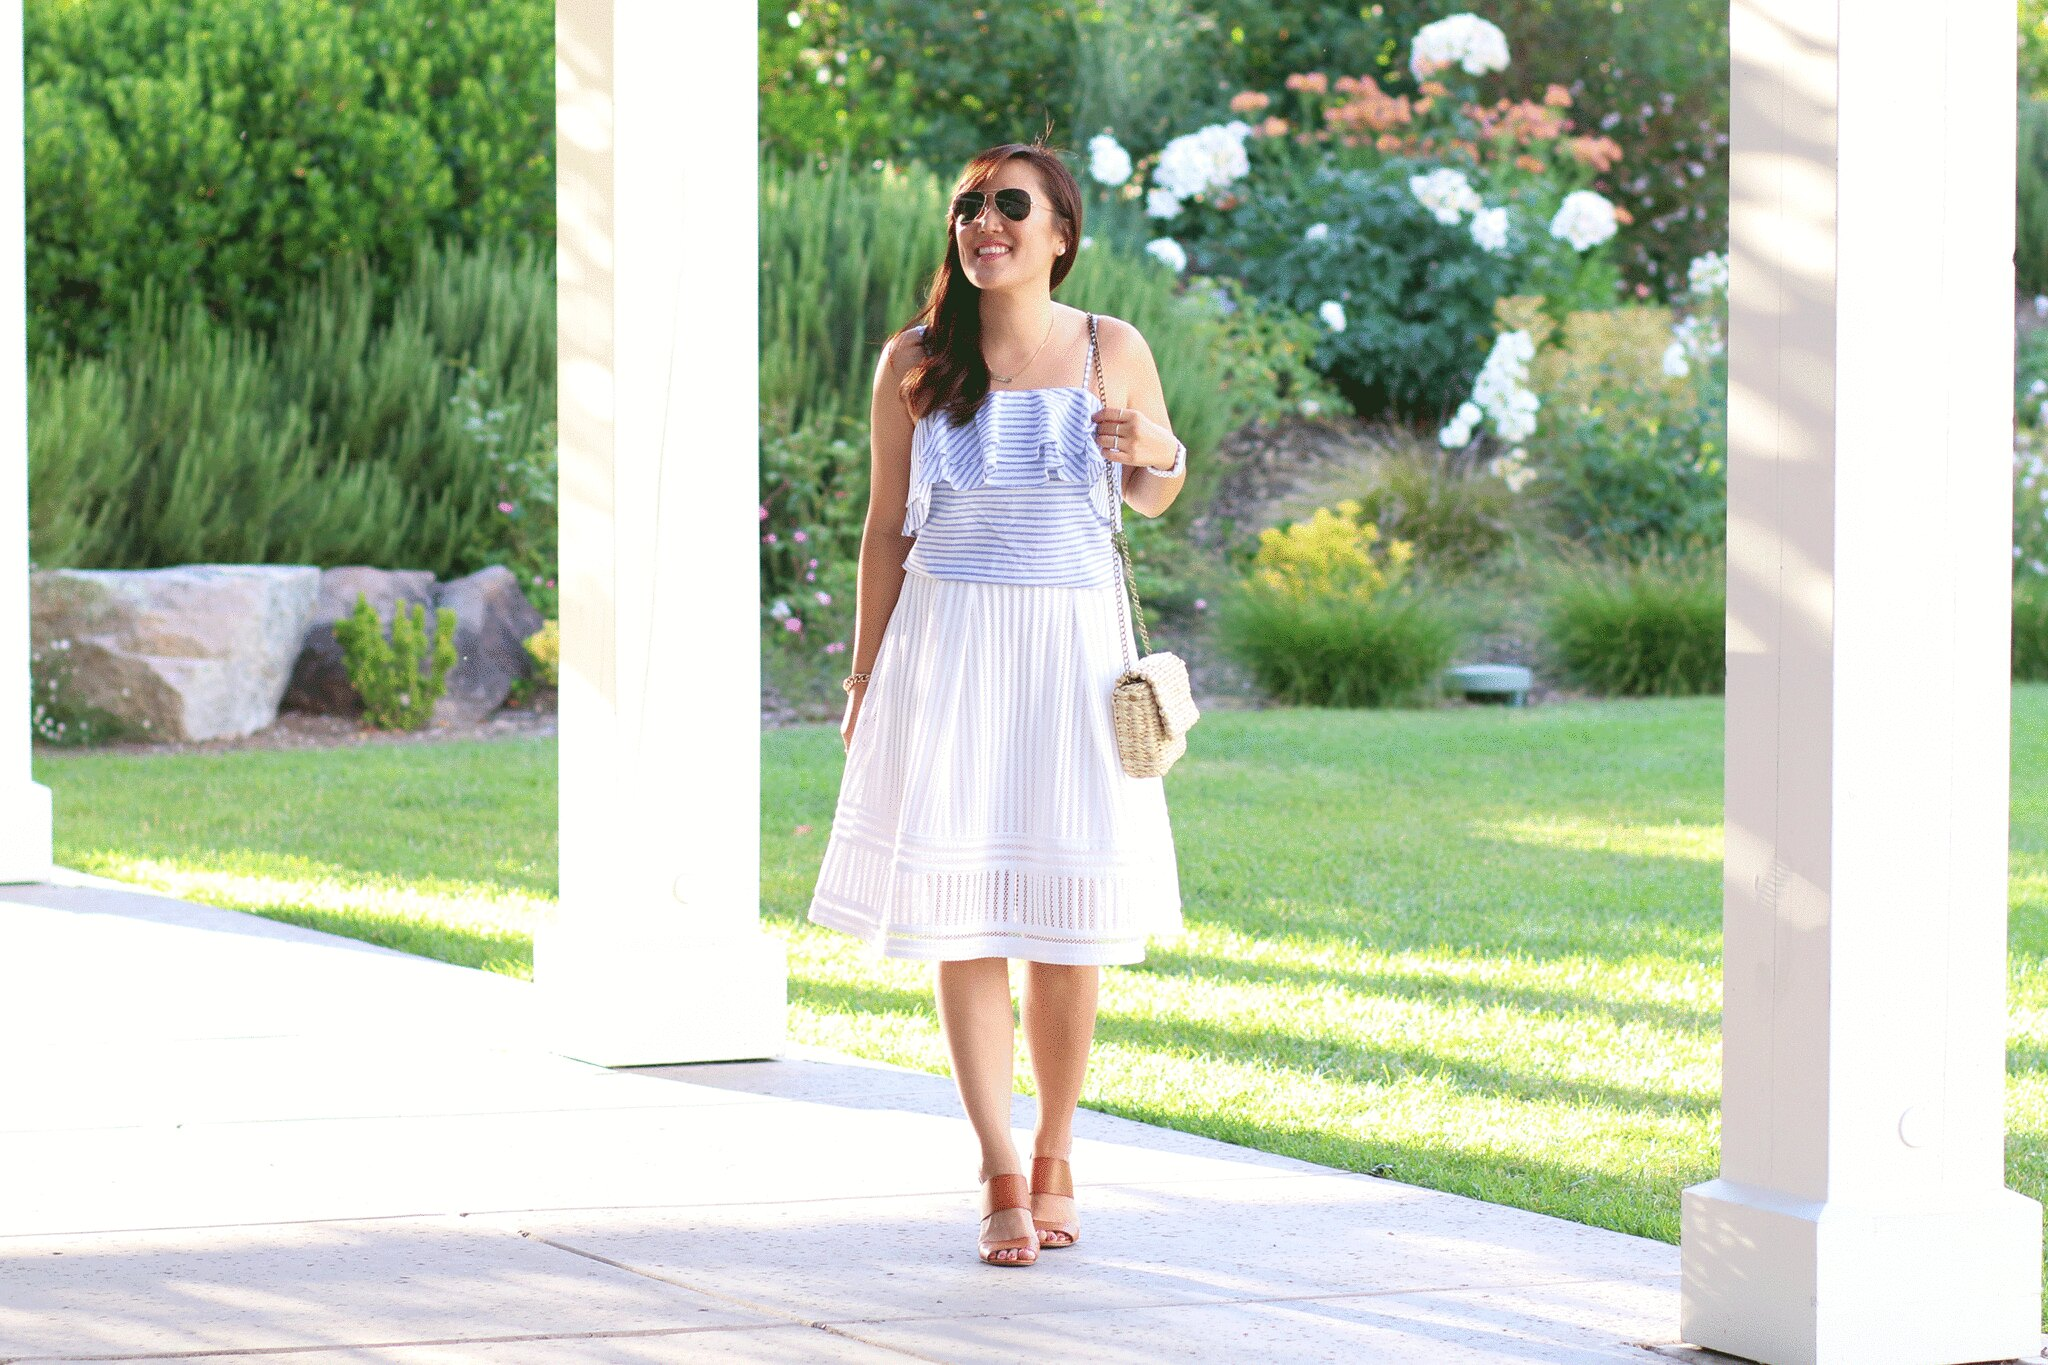 simplyxclassic, miriam gin, striped ruffle cami, white skirt, summer outfit, fashion blogger, woven bag, lifestyle blog, orange county